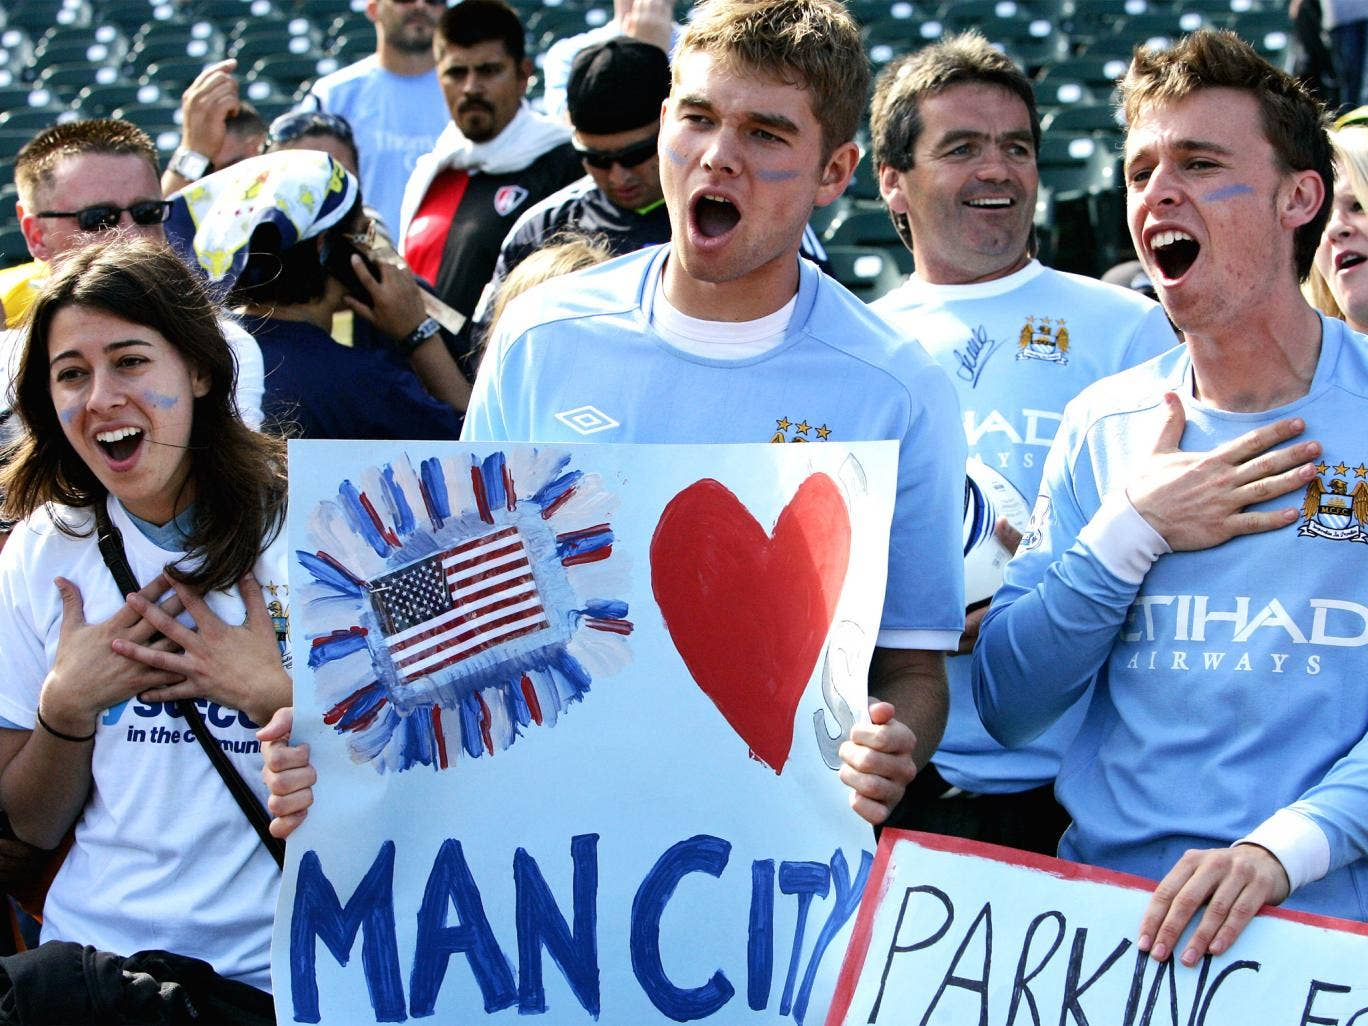 Fans in San Francisco are excited to see Manchester City play in a friendly match in 2011